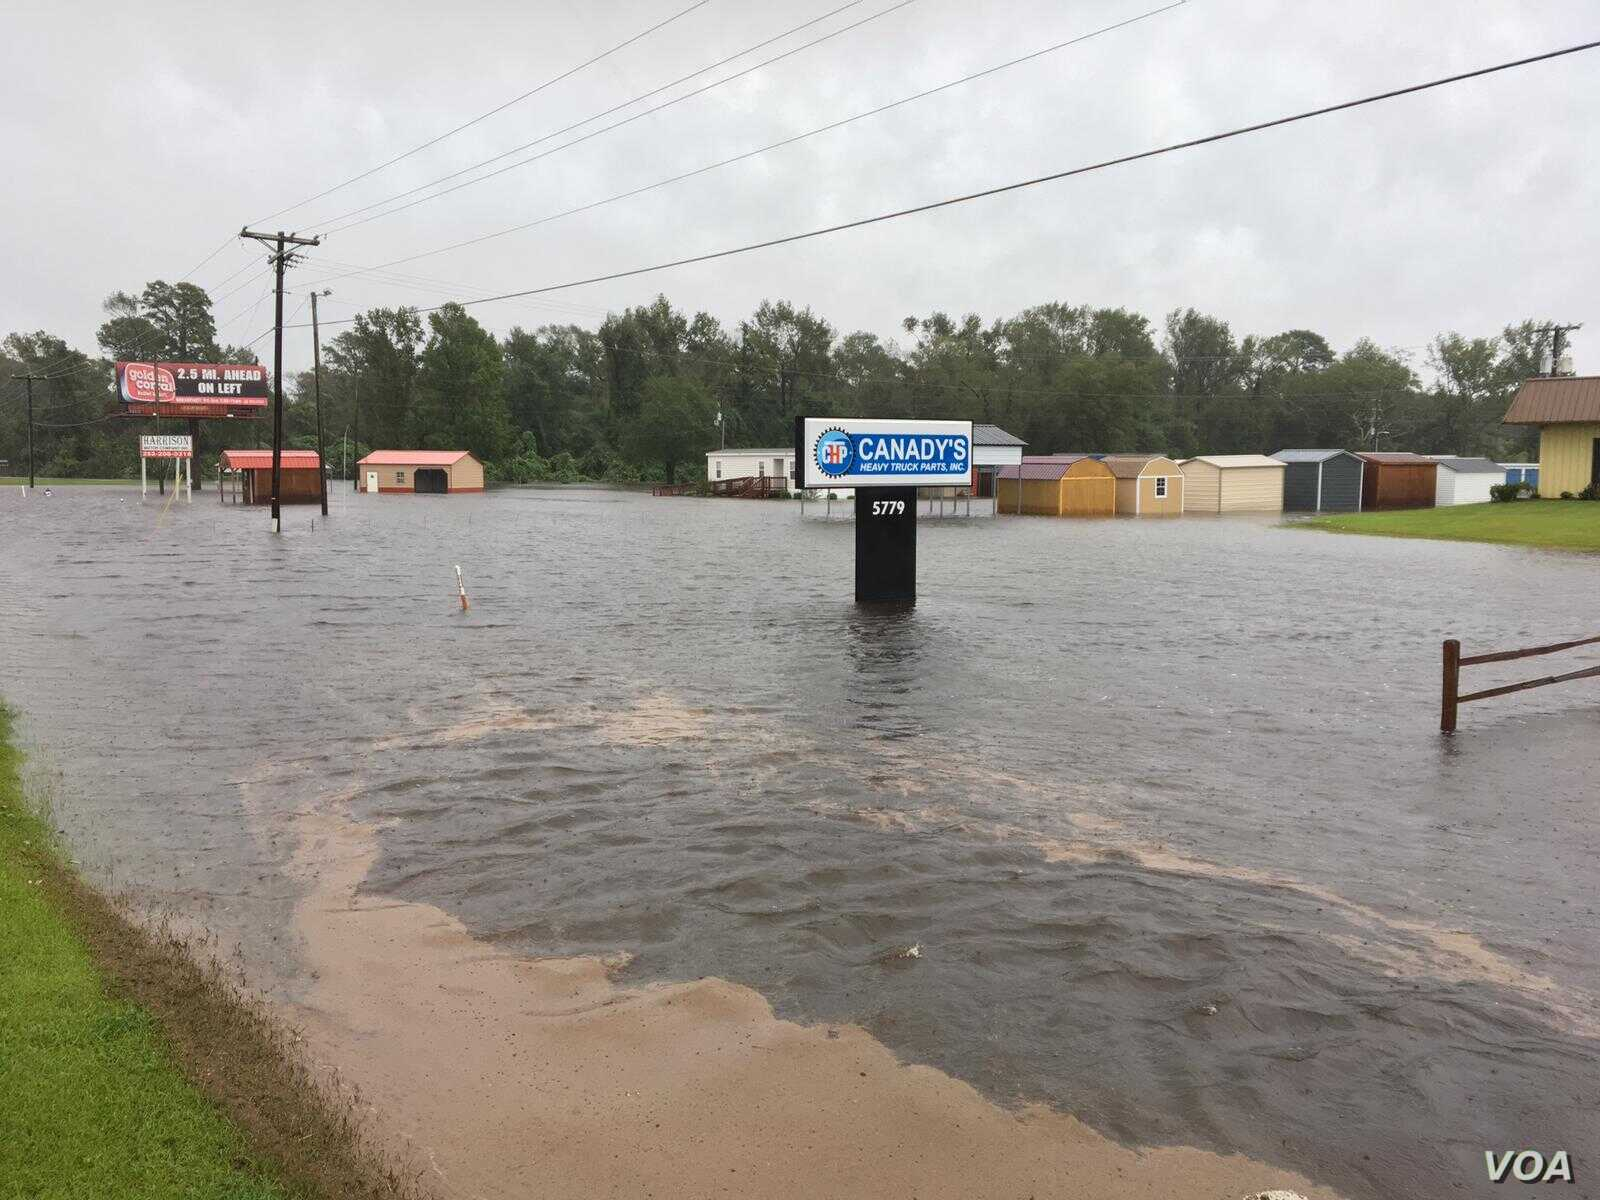 Floodwaters were rising near businesses in LaGrange, N.C., as Tropical Storm Florence pounded the area, Sept. 15, 2018. (VOA Russian service)